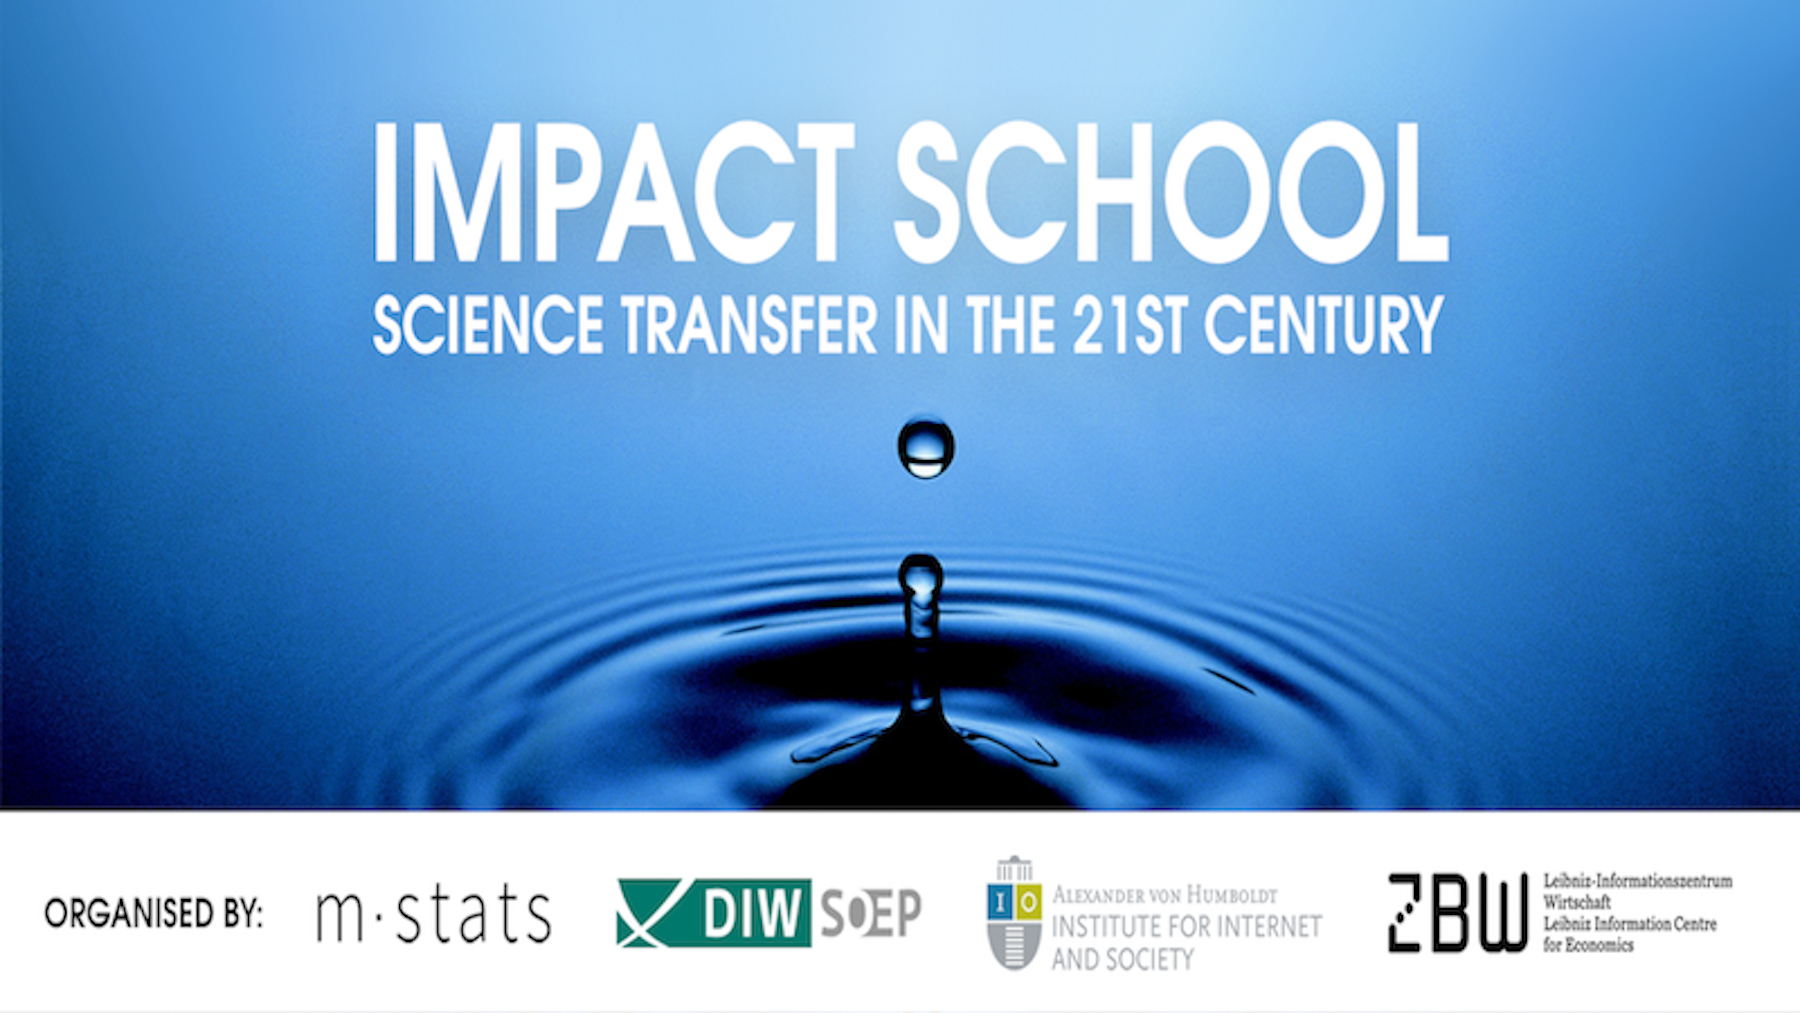 Impact School 2018: Science Transfer in the 21st Century